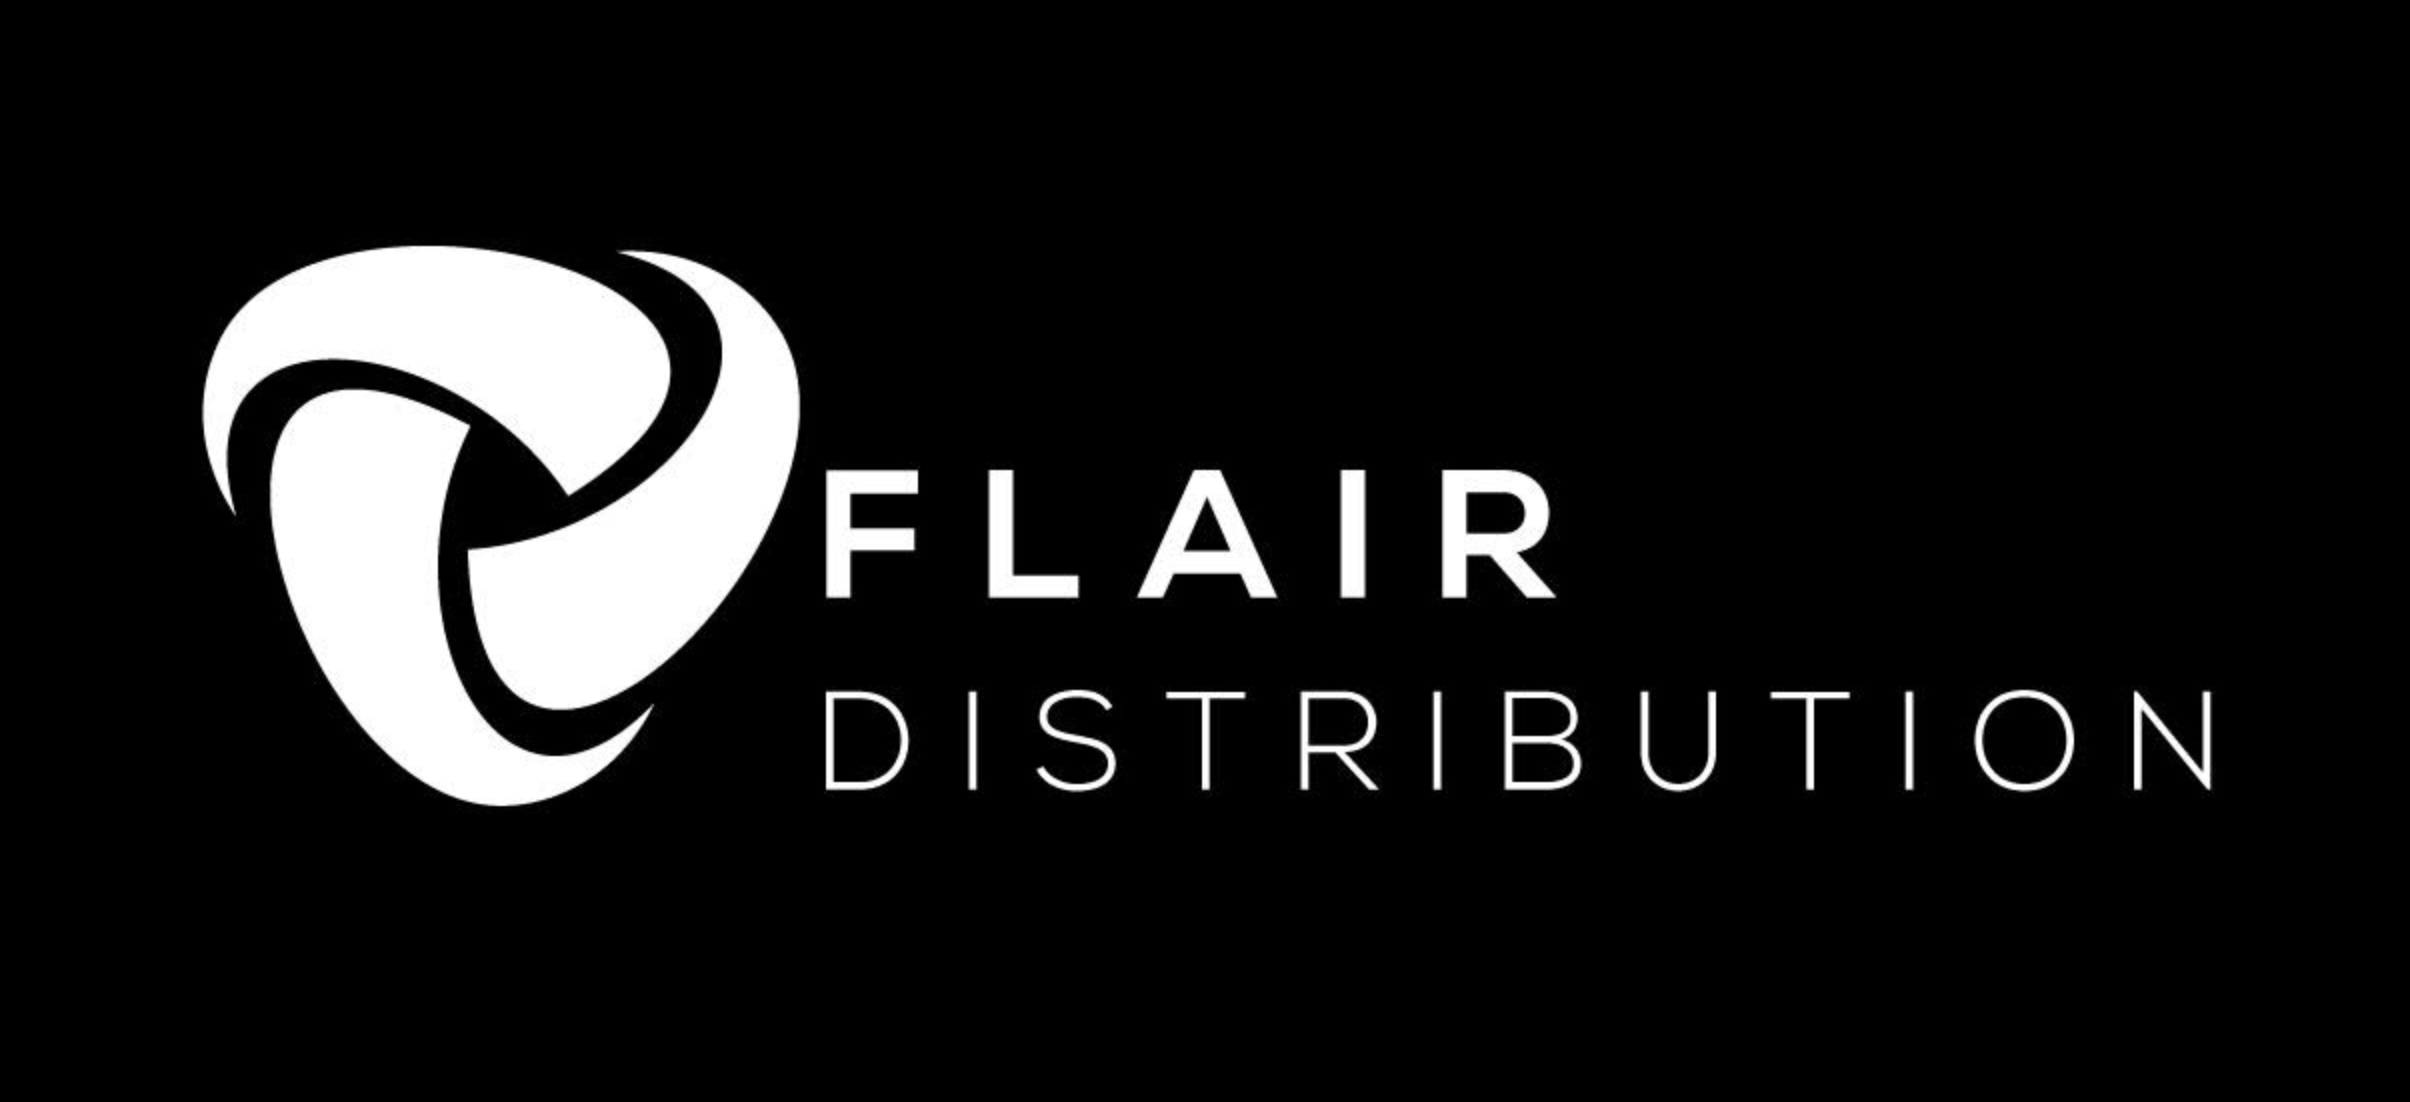 Flair Distribution